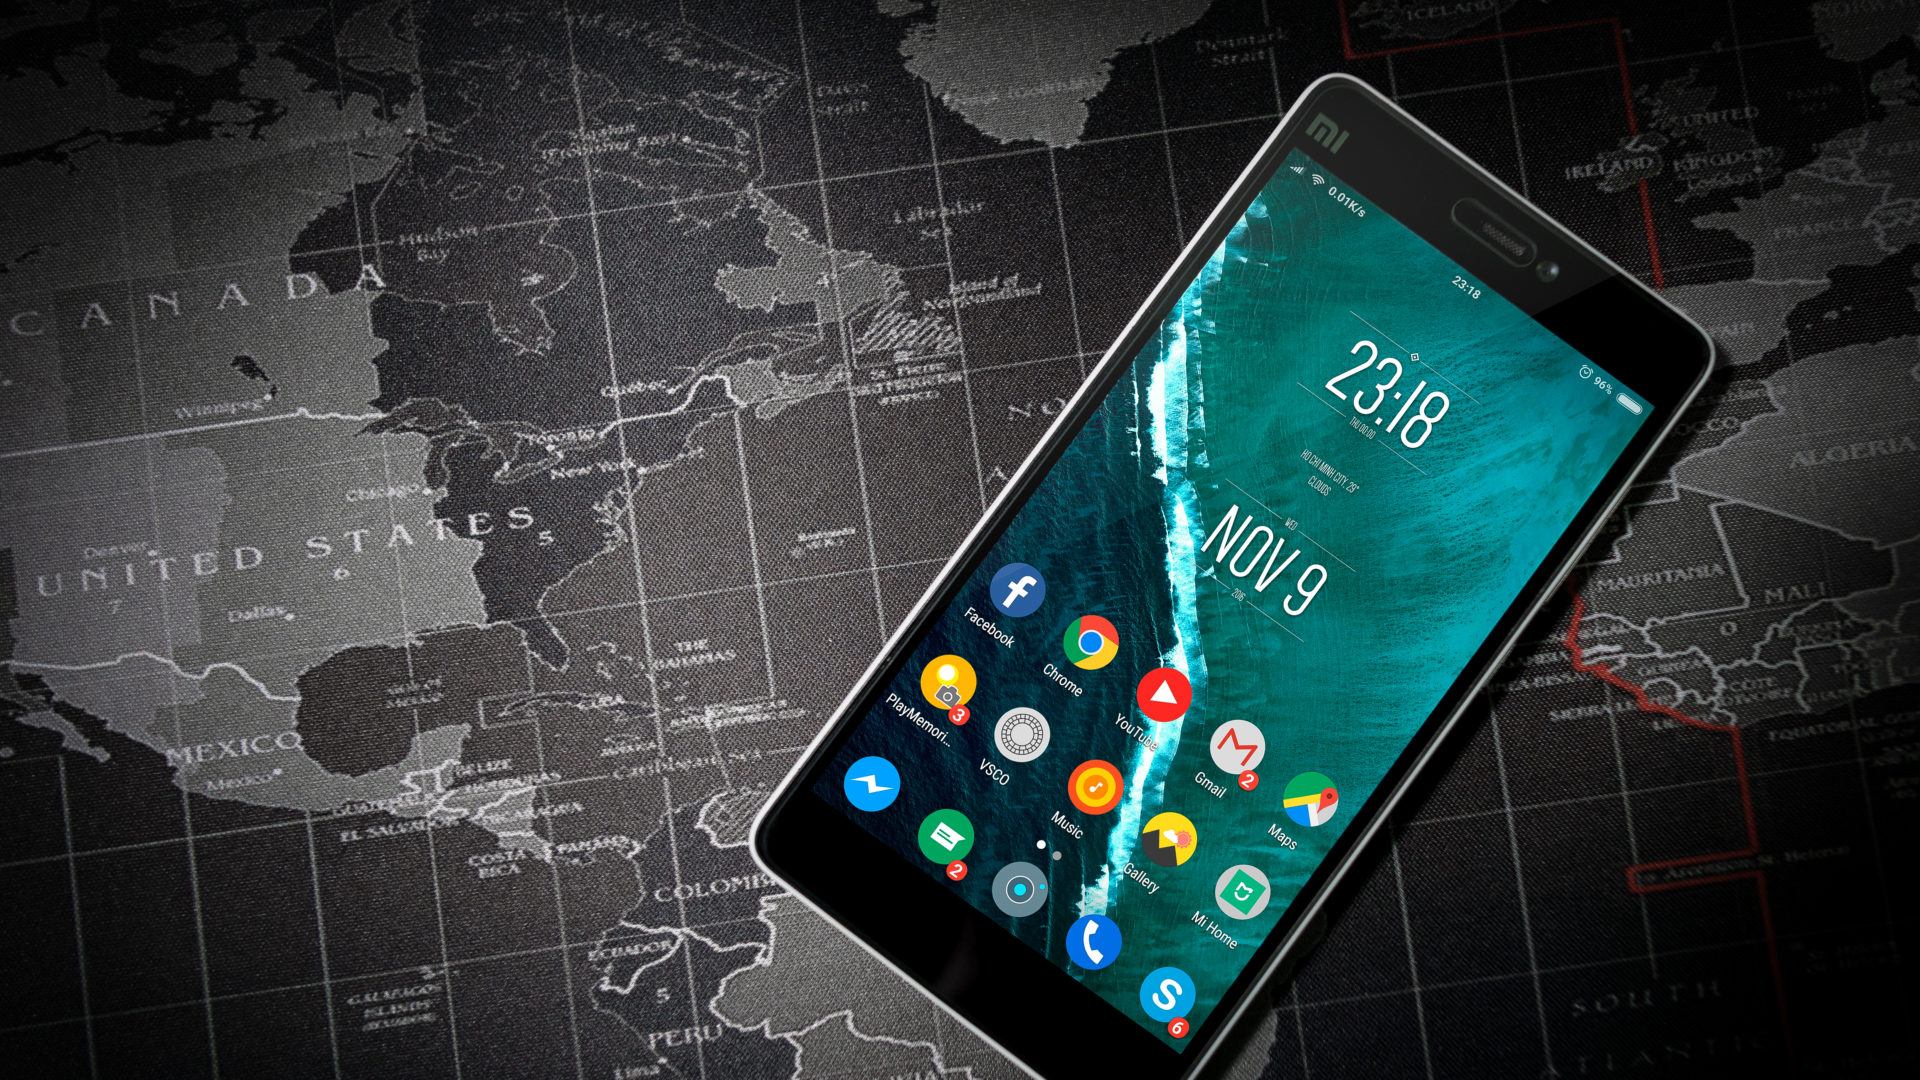 Top 5 Mobile Threats and How They Affect You